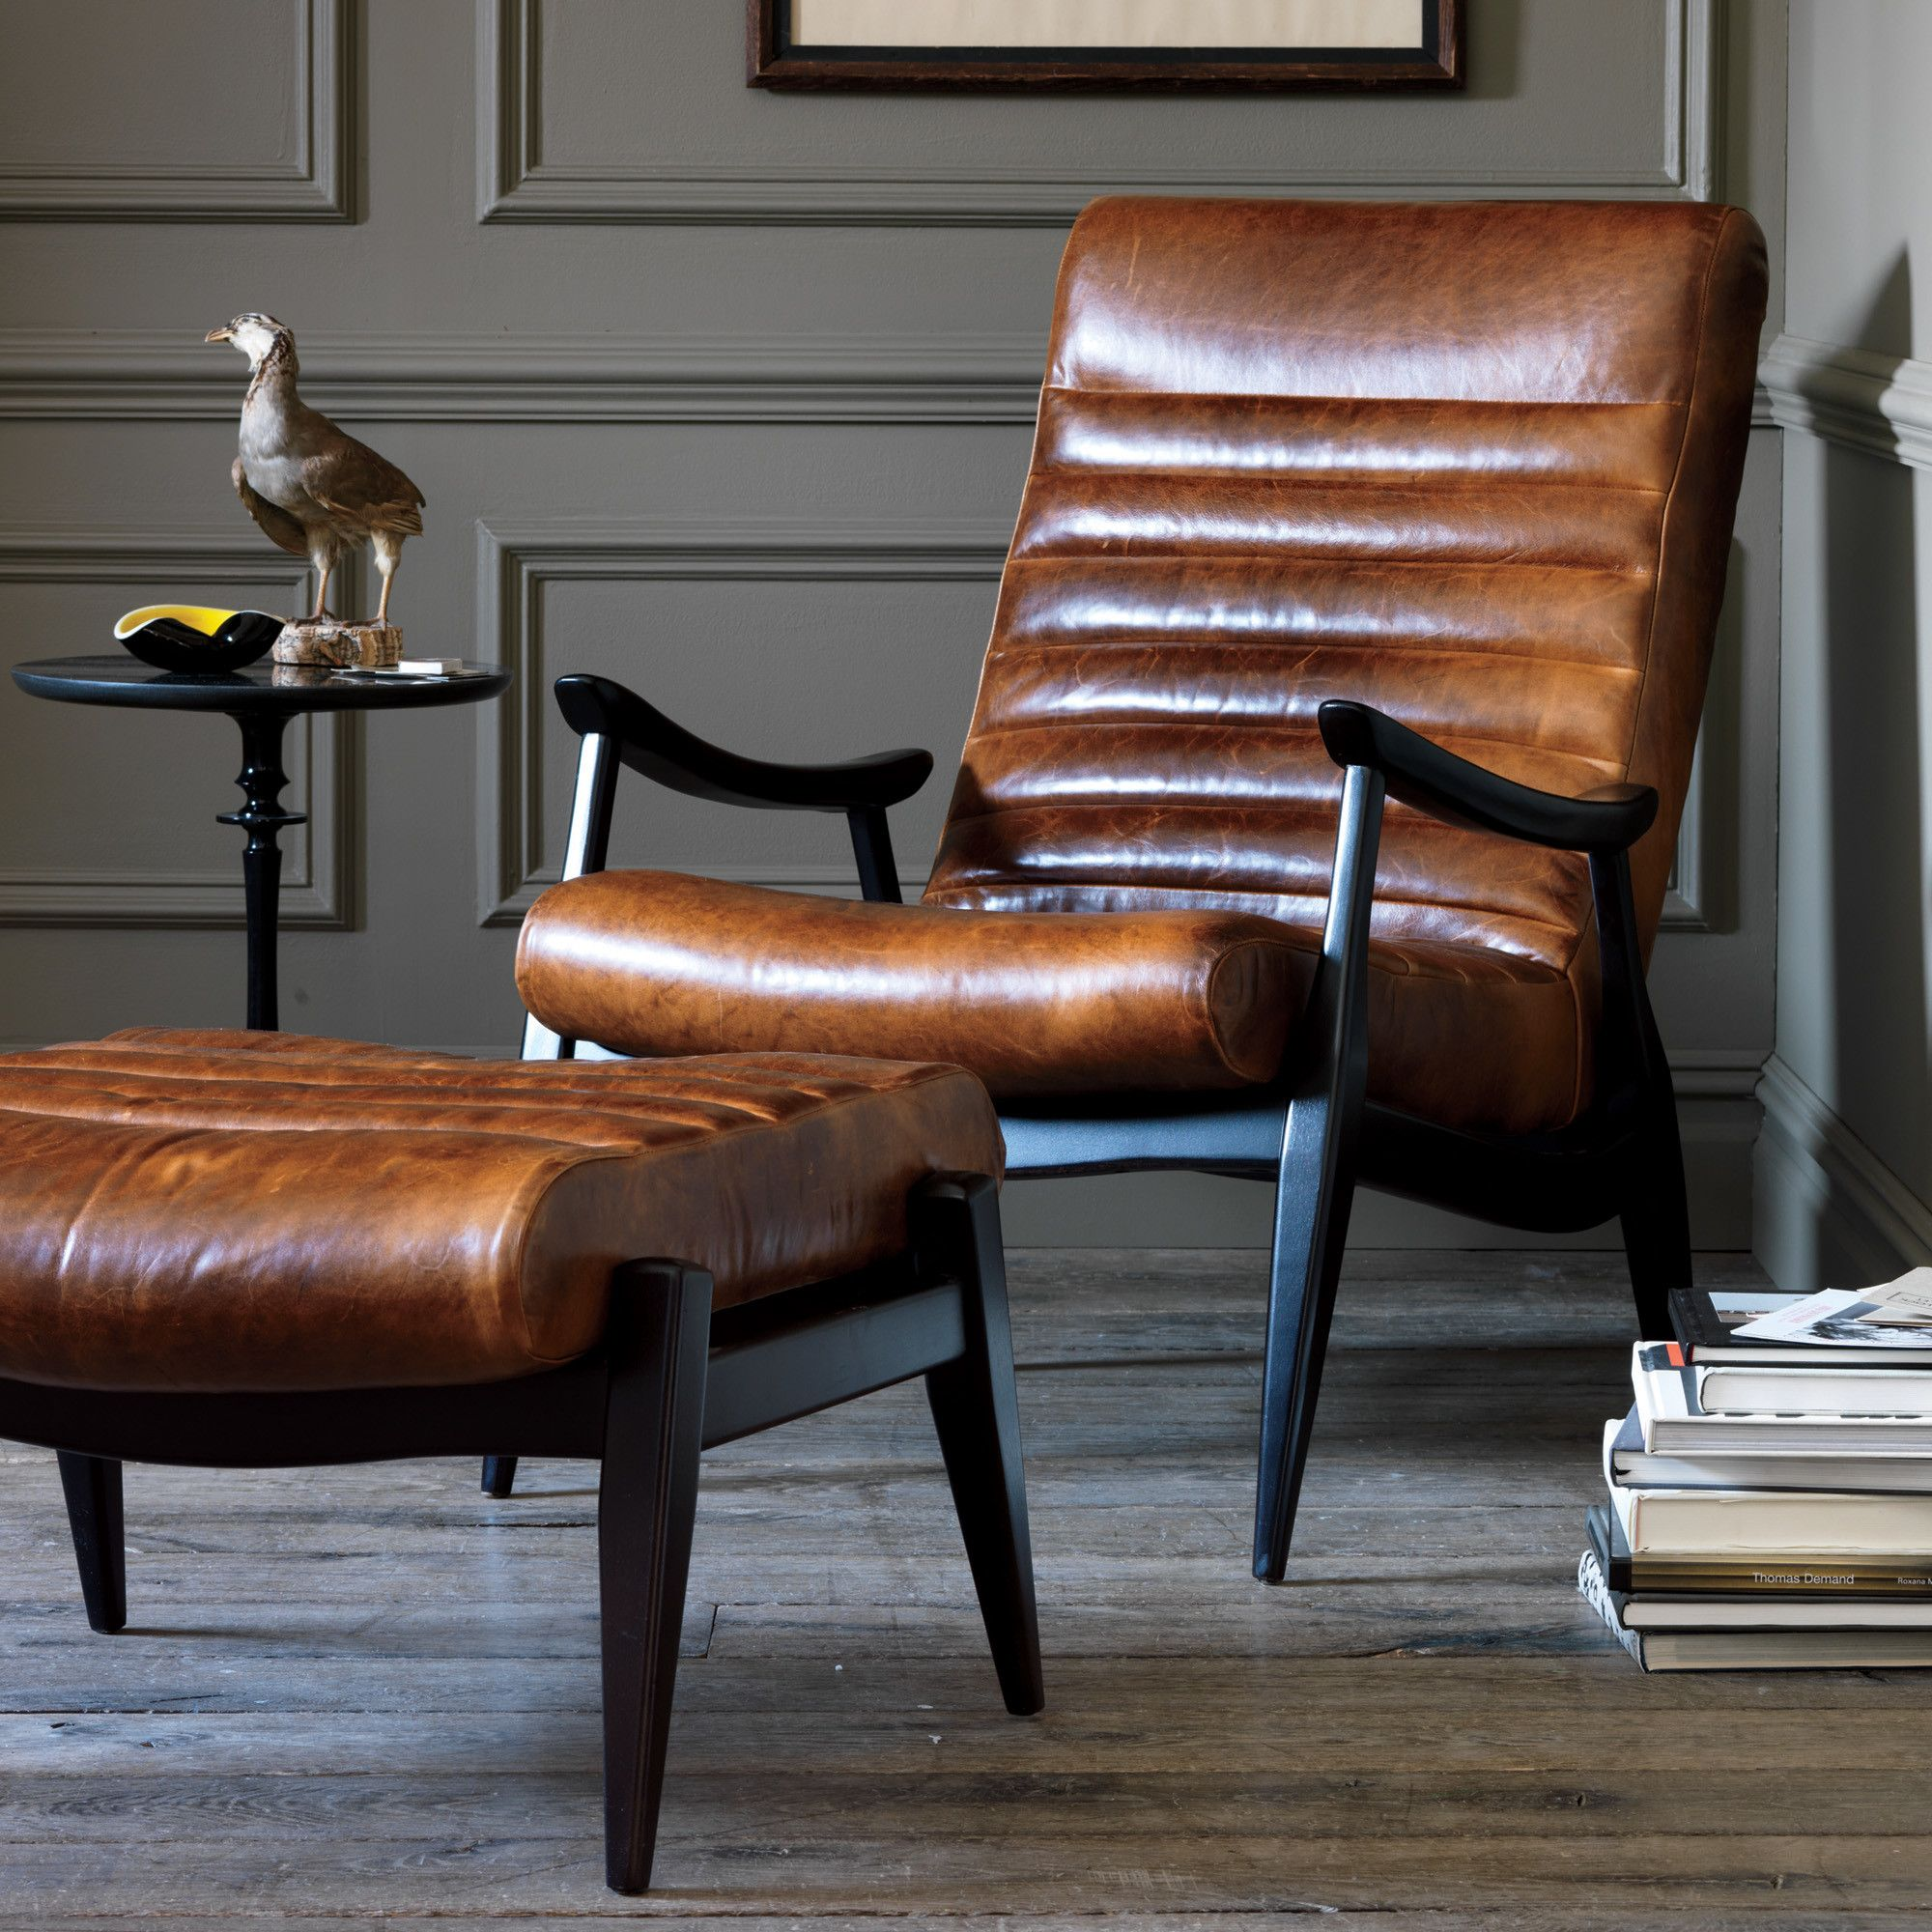 Hans Leather Chair Furniture Design Modern Furniture Design